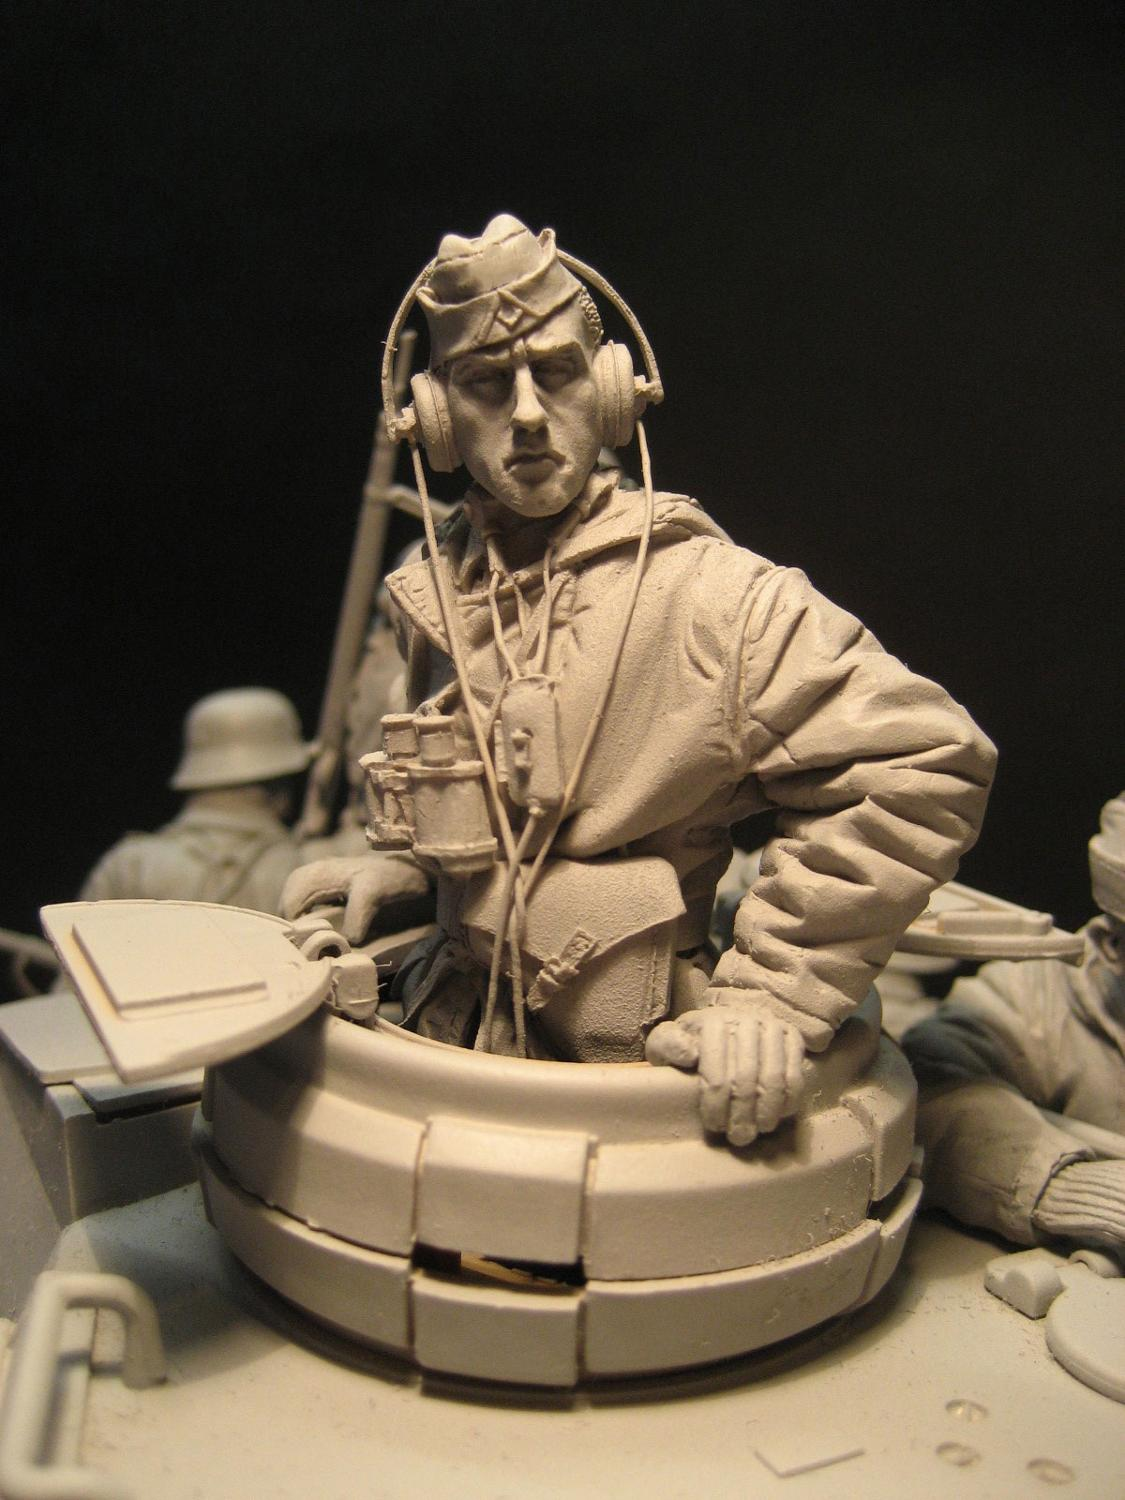 1/16 resin figures Tank driver soldiers Unpainted and Unassembled kit 1639DModel Building Kits   -